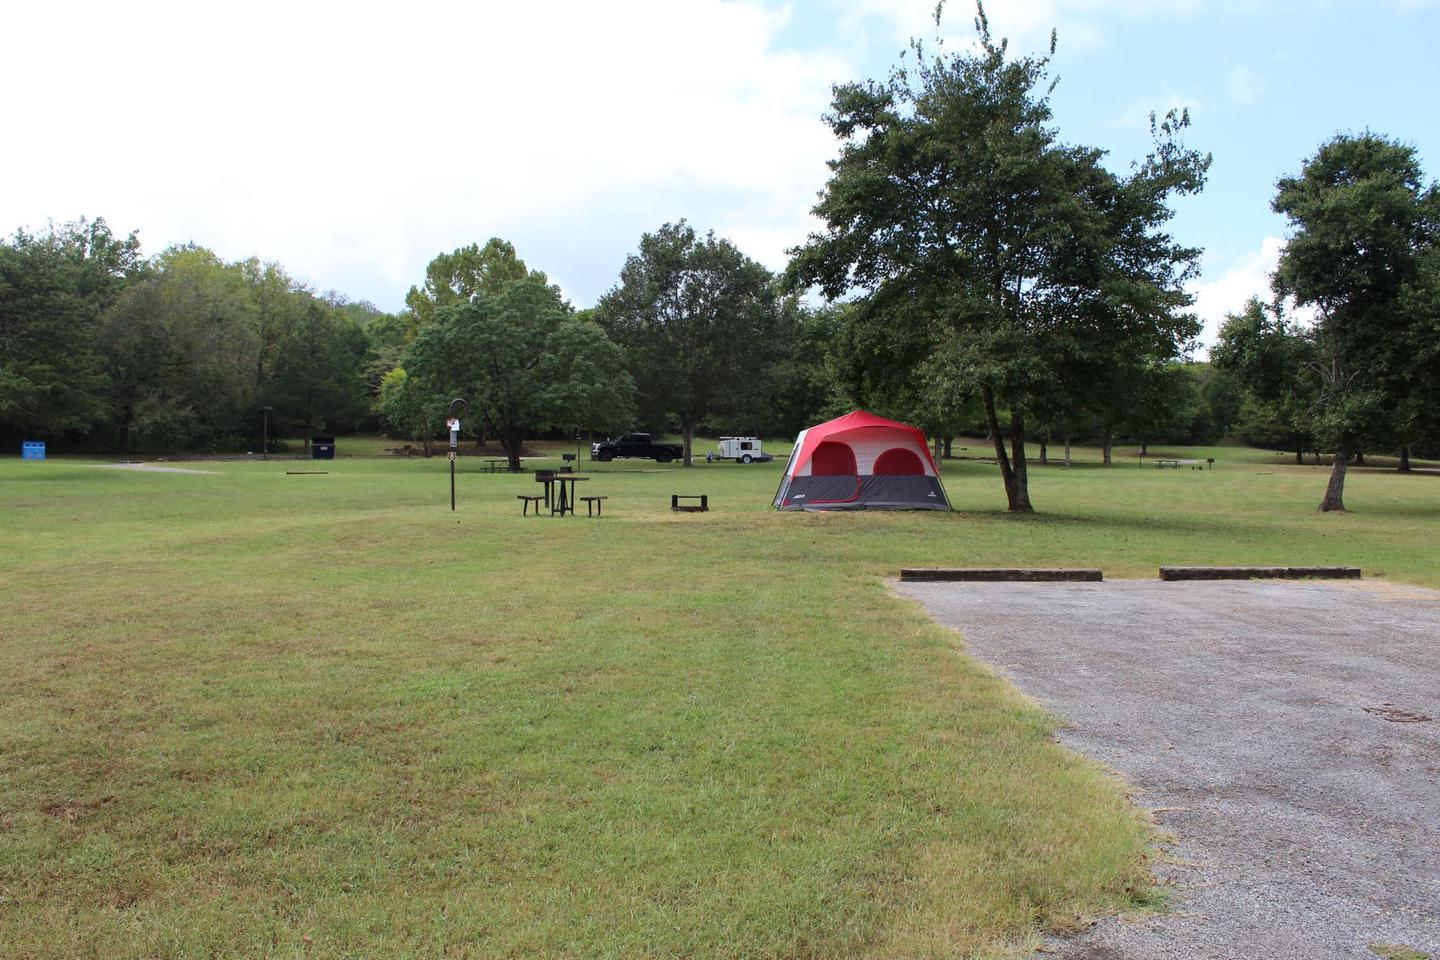 Tyler Bend Main Loop Site# 8-7 Site# 8, 35' back-in, tent pad 15' x 15'.  Parking area is wide enough to parking Rv & car side by side.